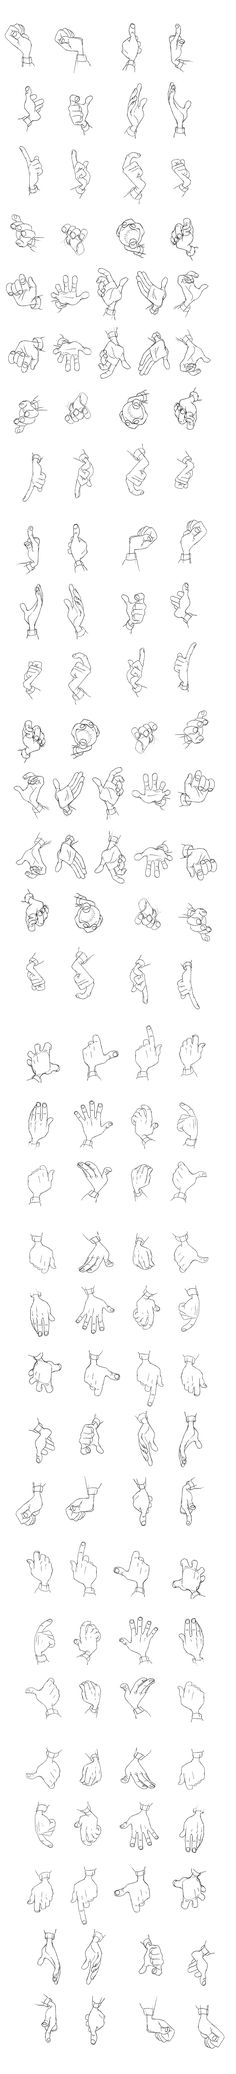 """Hogarth"" Hands Reference Sheet The Iron Giant 